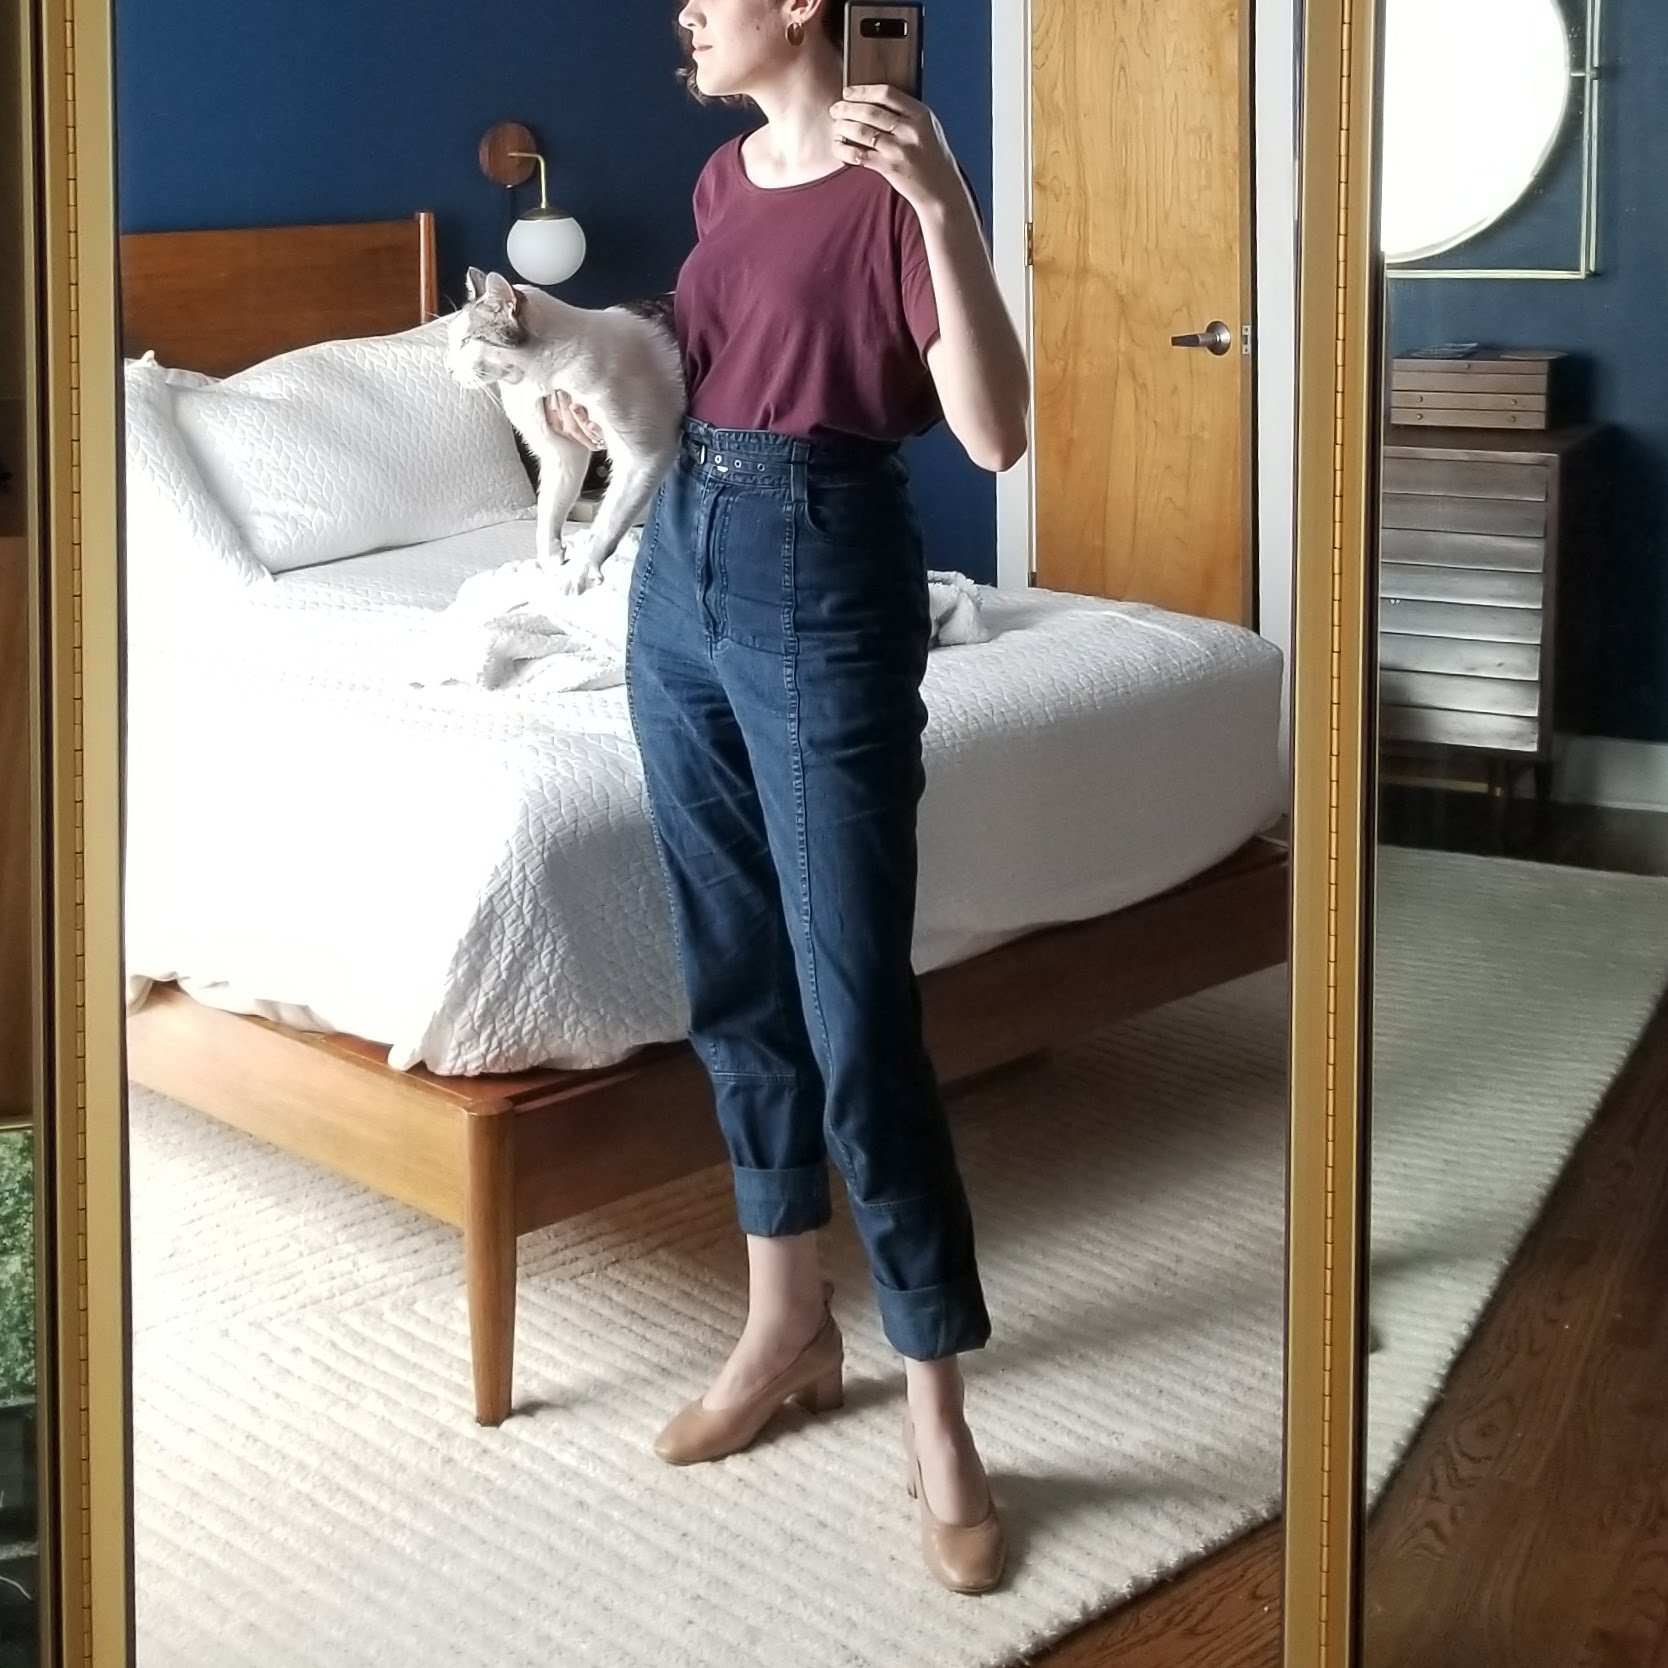 Saturday - March 31, 2018Shoes aside, this is a complete outfit repeat (See: March 19, 2018). I love this outfit. Something about the cut of this Everlane square tee is just the right width to blouse out from these high-waist Rachel Comey jeans. I've rolled up the cuff on the jeans to show a little more ankle, and I really like the look with the rose tan block heels. The associate who helped me in the Warby Parker complimented this outfit. I've arrived!